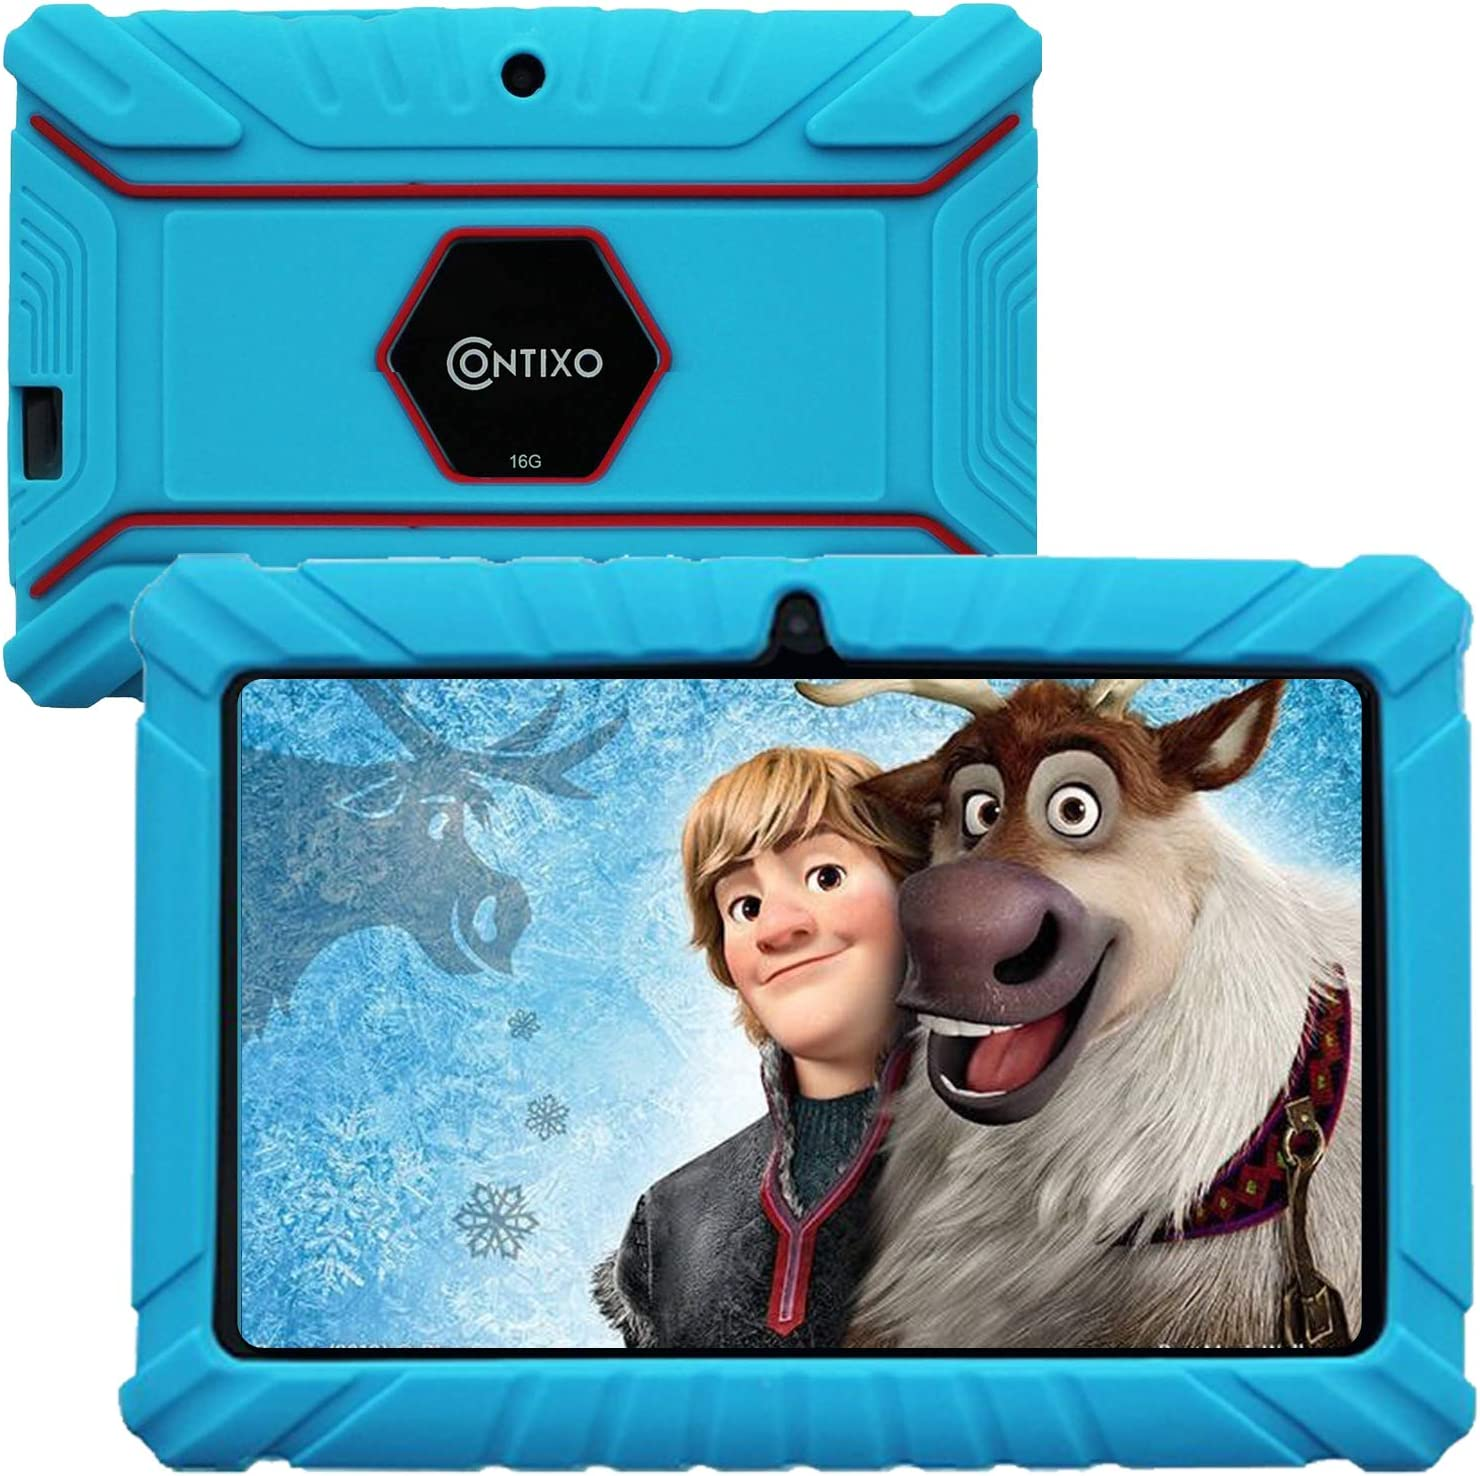 "Contixo V8-2 7"" Android 16GB Kids Tablet Parental Control Learning Education Apps on Google Certified Playstore Toy Tablet for Kids, Kids- Proof, WiFi Camera Best Gift (Blue)"